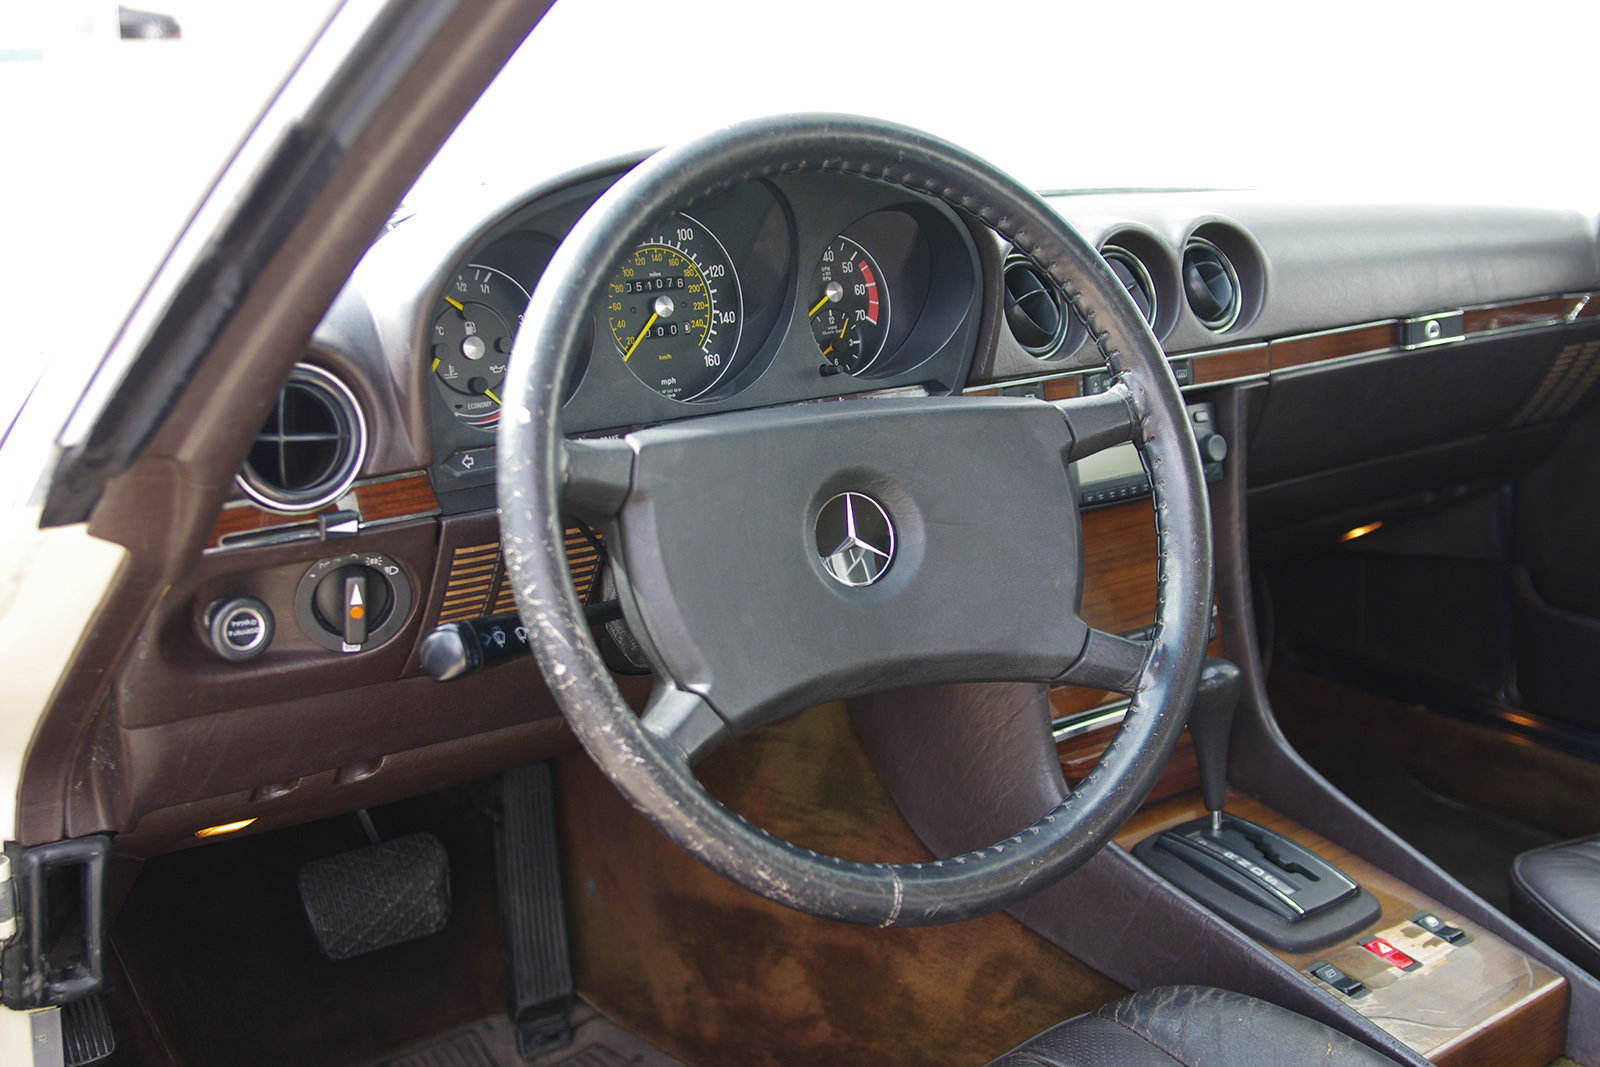 1982 Mercedes-Benz 380 SL - R 107 - partially restored SOLD (picture 3 of 6)